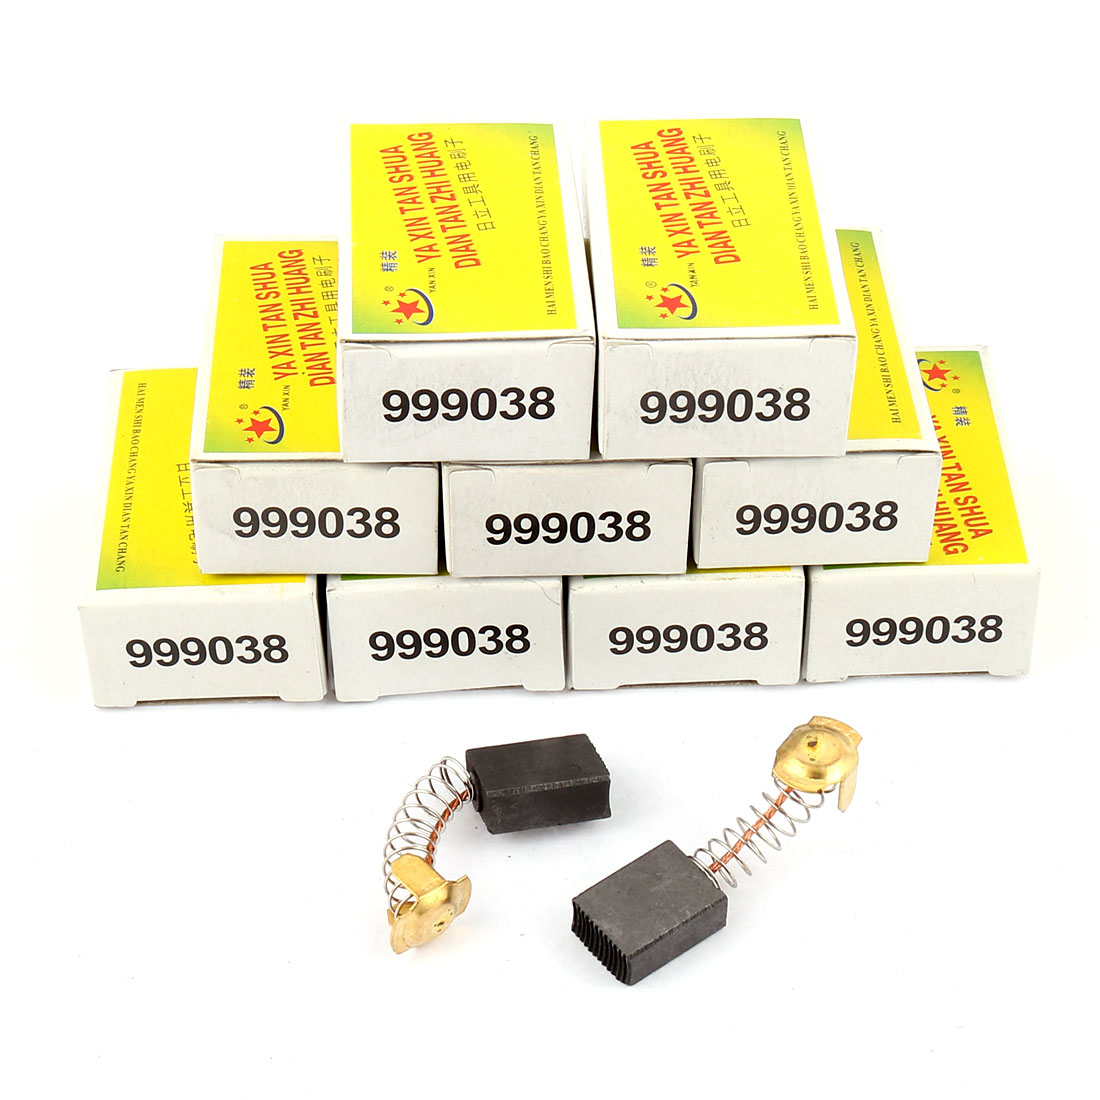 10 Pairs Replacement Carbon Brushes 17mm x 13mm x 7mm for Generic Electric Motor